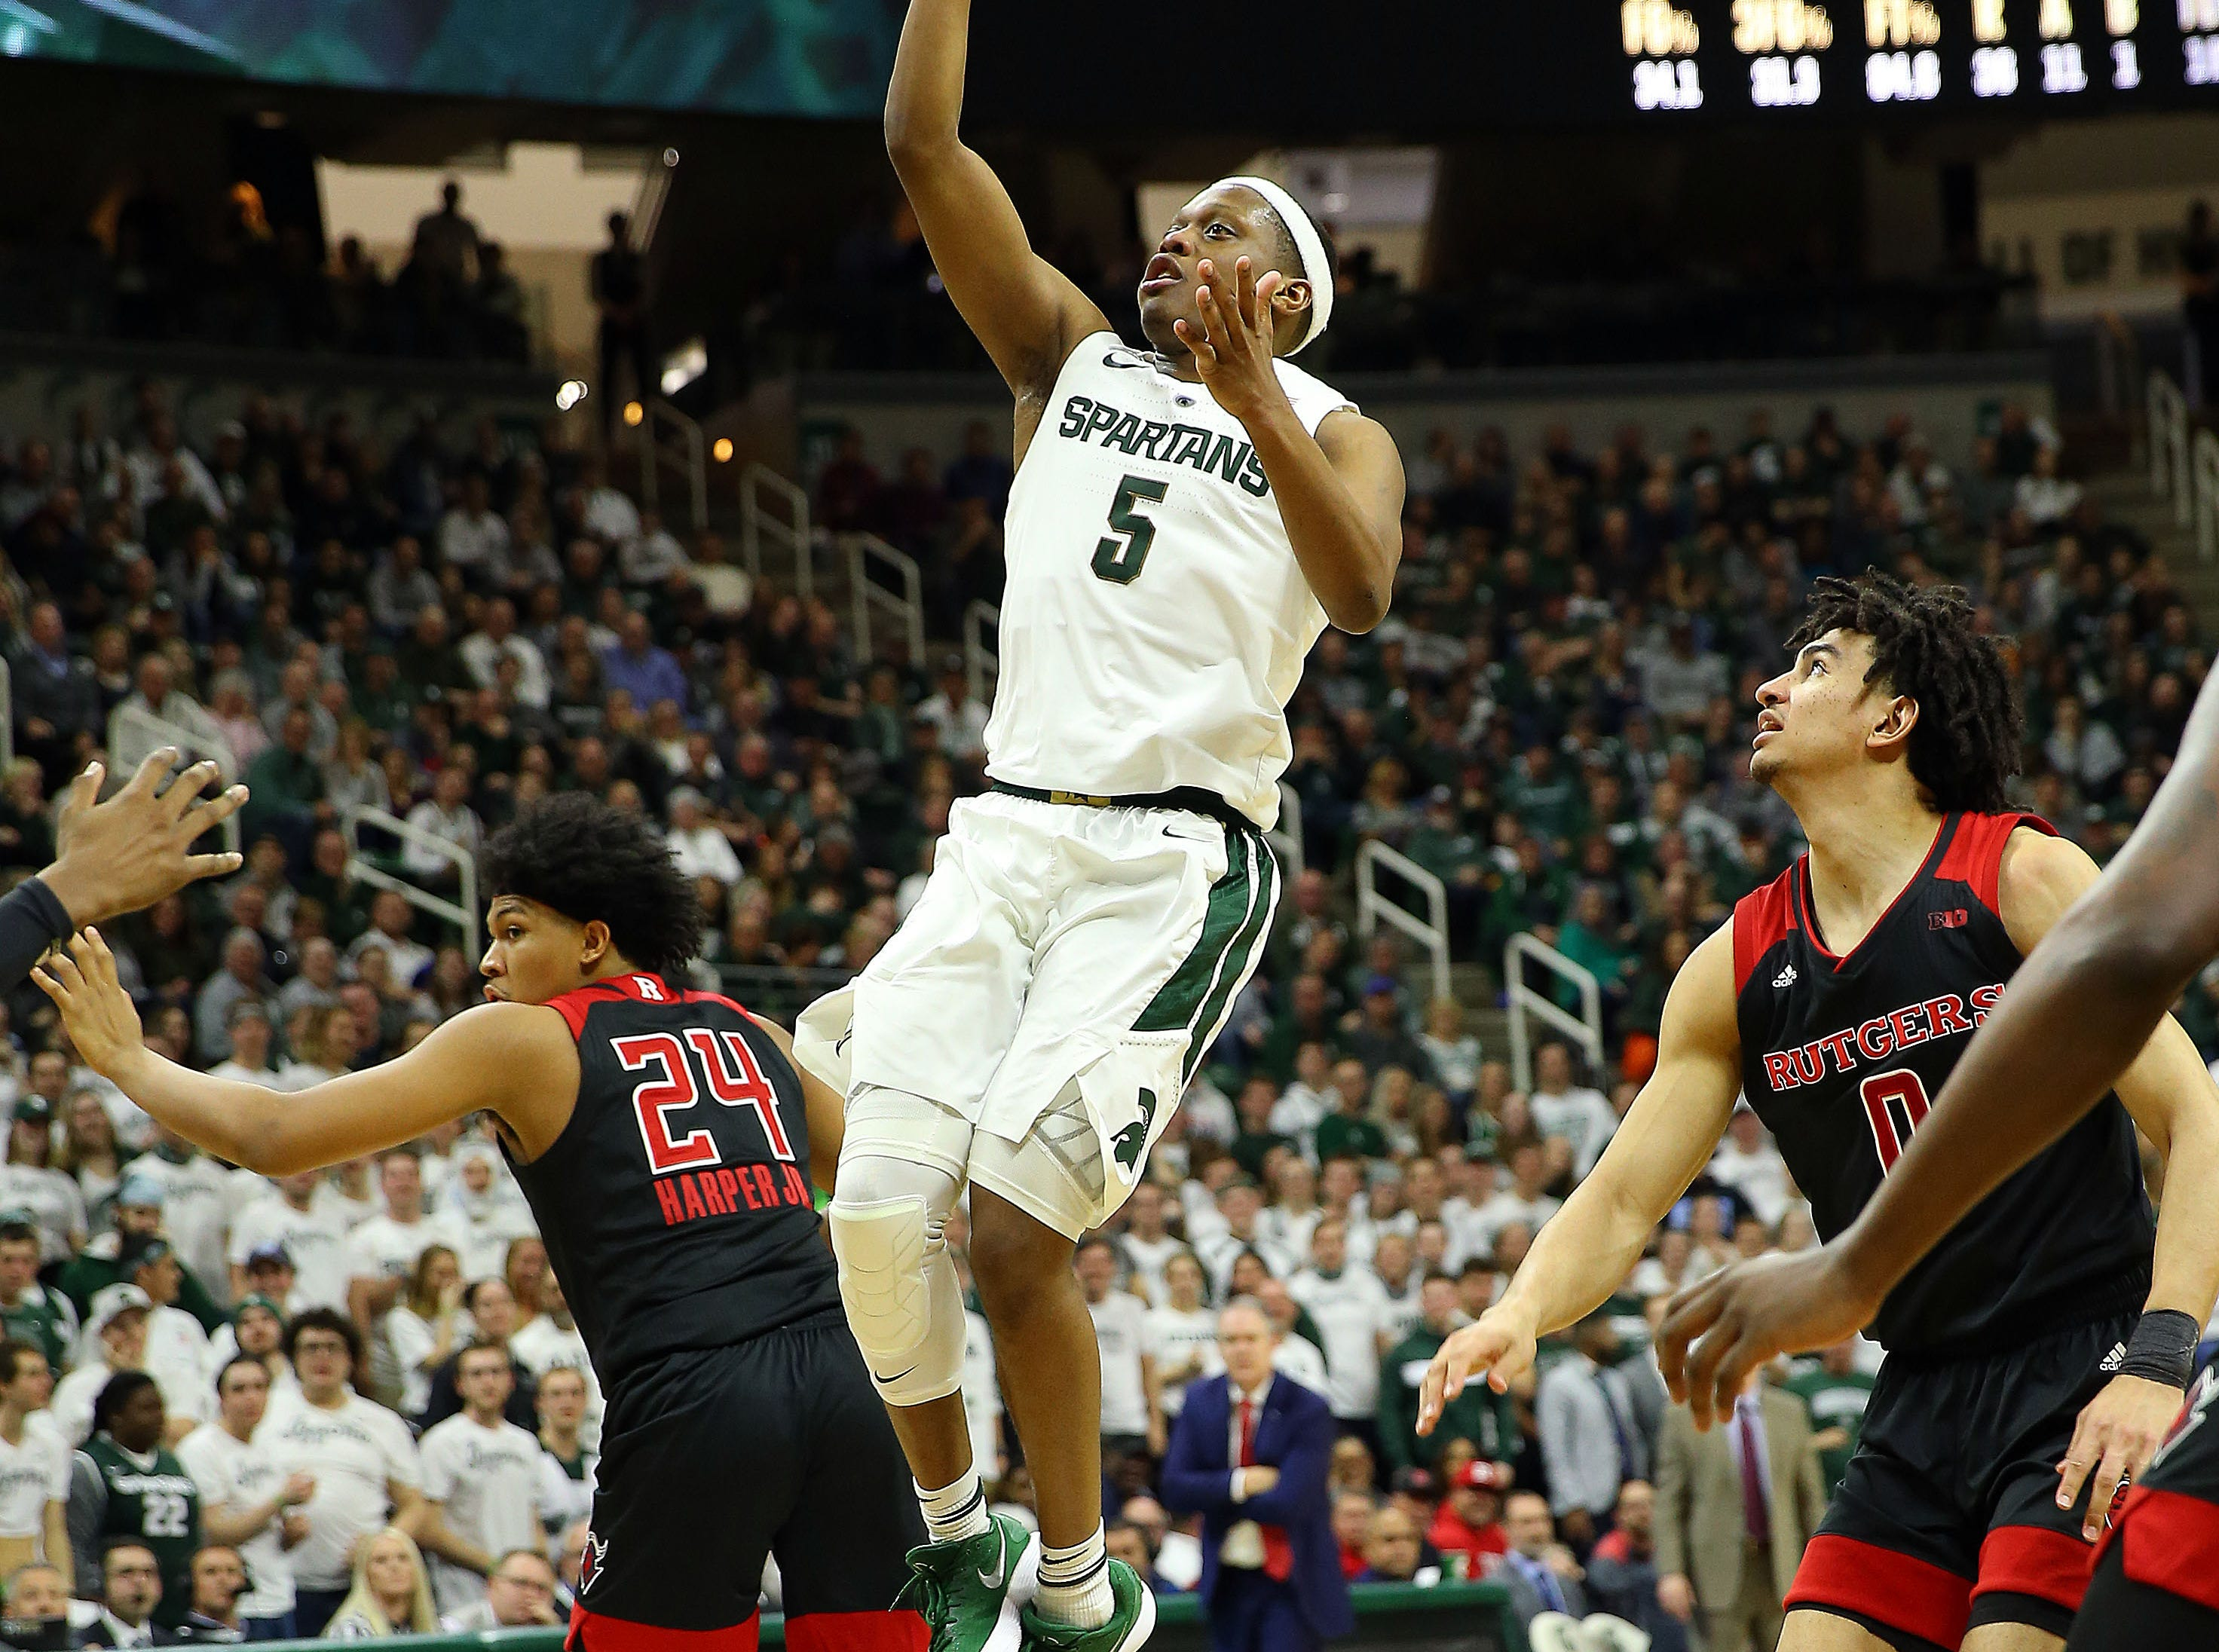 Feb 20, 2019; East Lansing, MI, USA; Michigan State Spartans guard Cassius Winston (5) drives to the basket during the second half of a game against the Rutgers Scarlet Knights at the Breslin Center. Mandatory Credit: Mike Carter-USA TODAY Sports